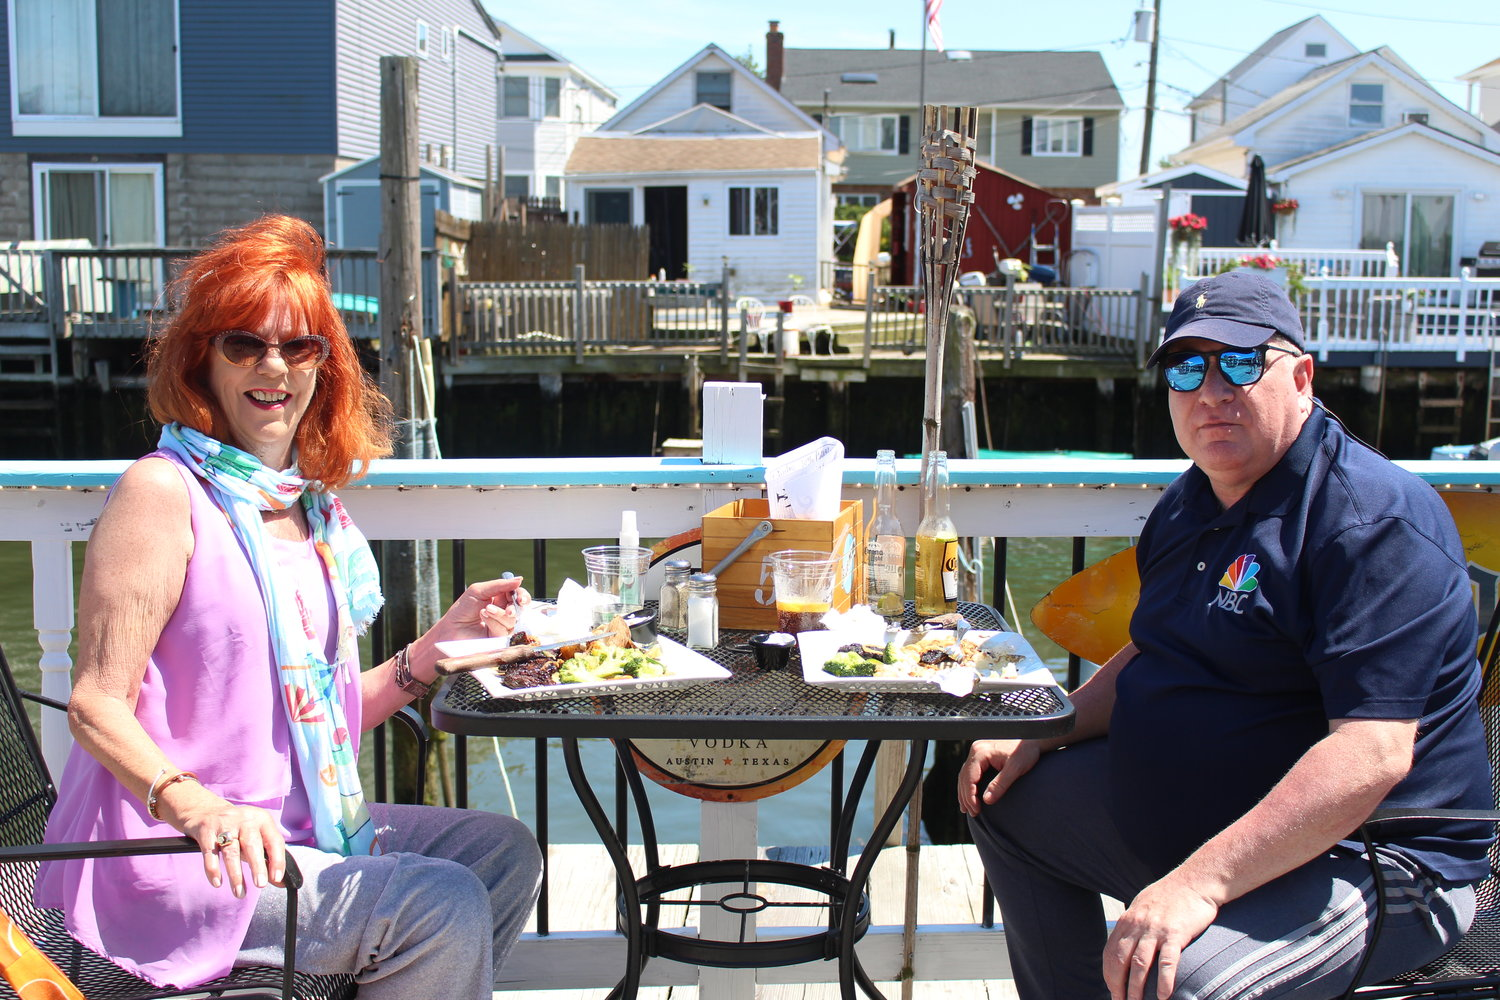 Oceanside residents Sharon O'Rourke and Chris Gigante dined at Sonny's Canal House in Baldwin on June 19.